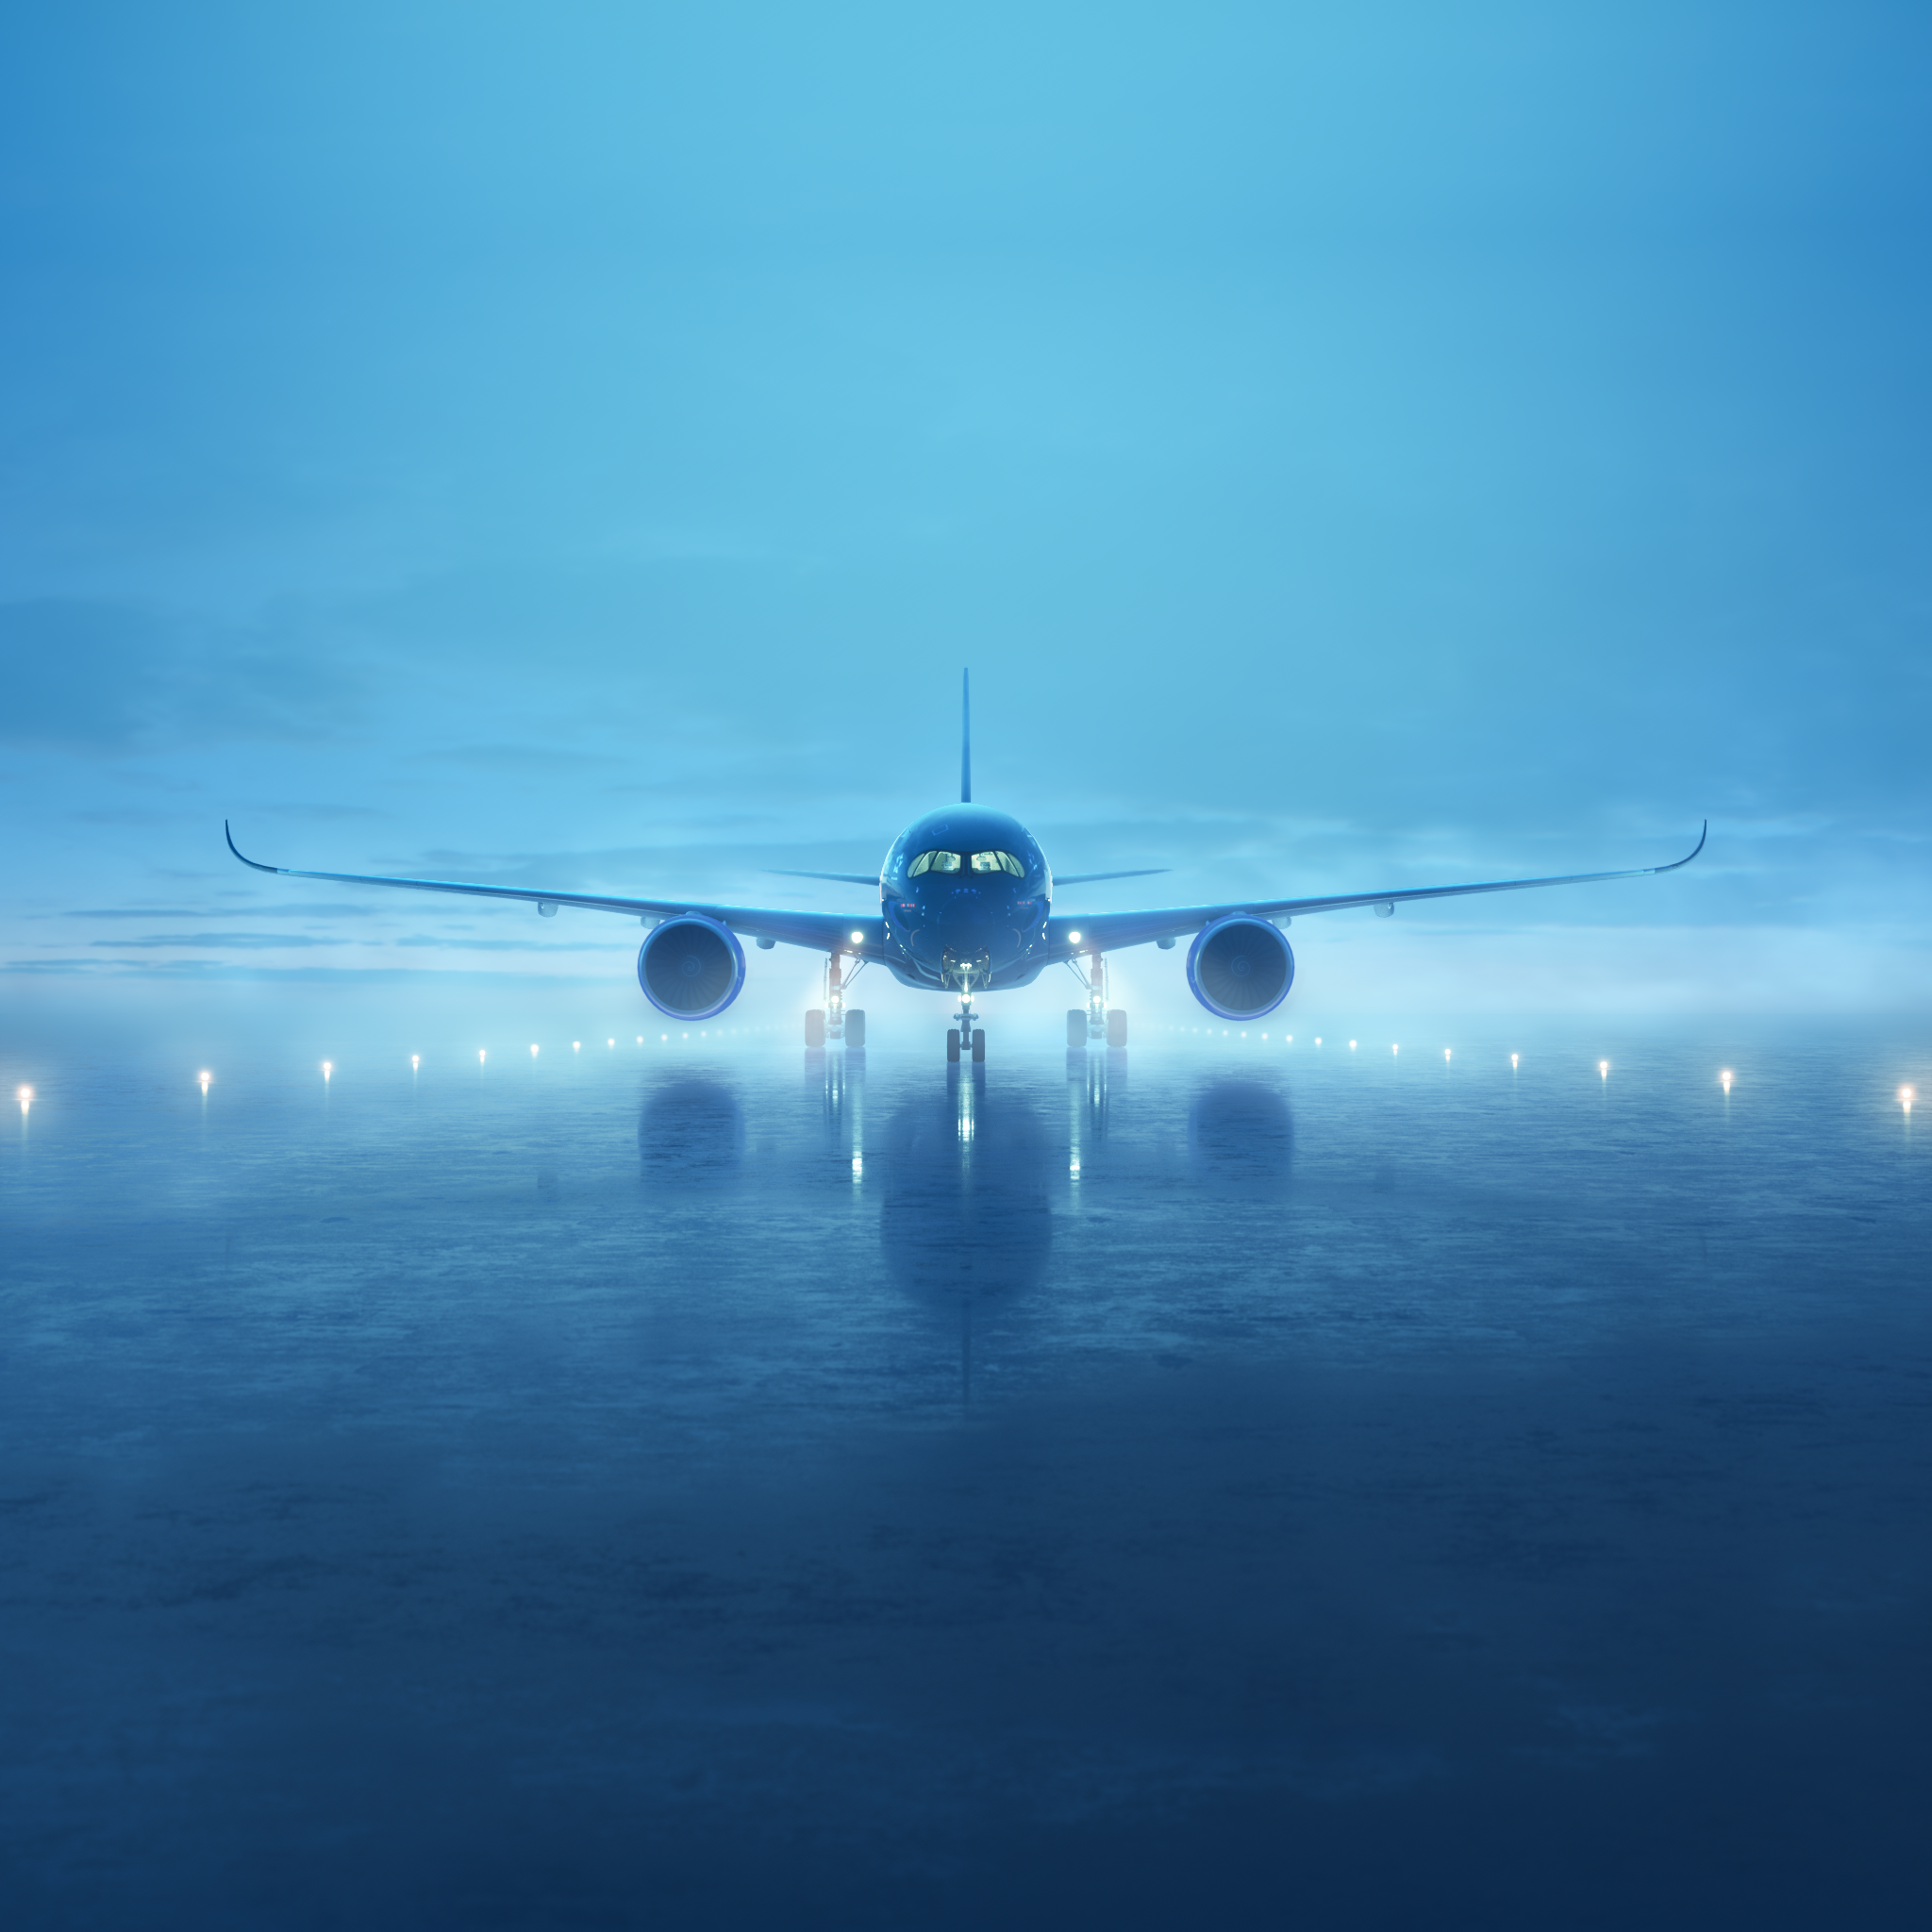 From January 2020, travelers can look forward to exploring the world in the most fuel-efficient and comfortable long haul aircraft, the Airbus A350..png